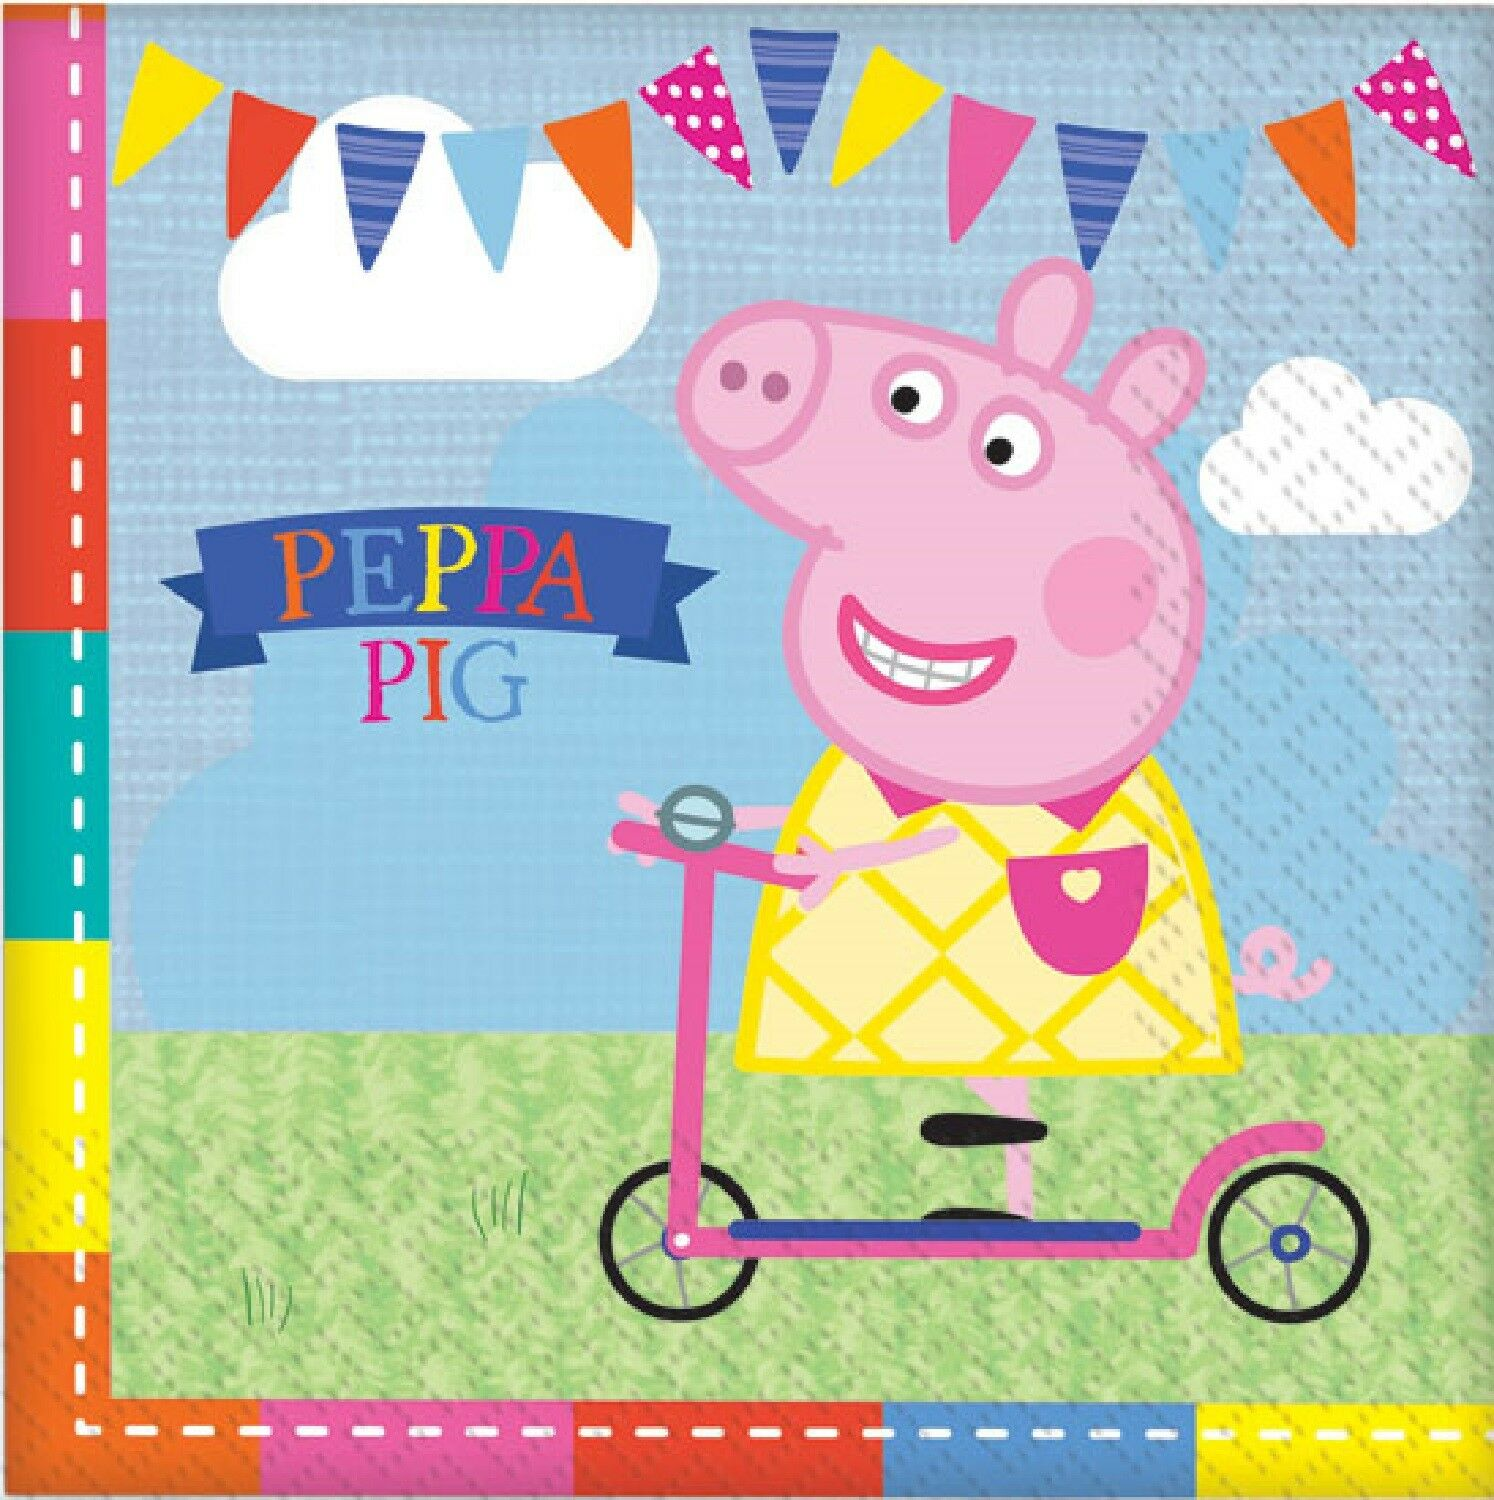 Details About Girls Boys Toddlers Birthday Party Paper Tableware Napkins Peppa Pig George